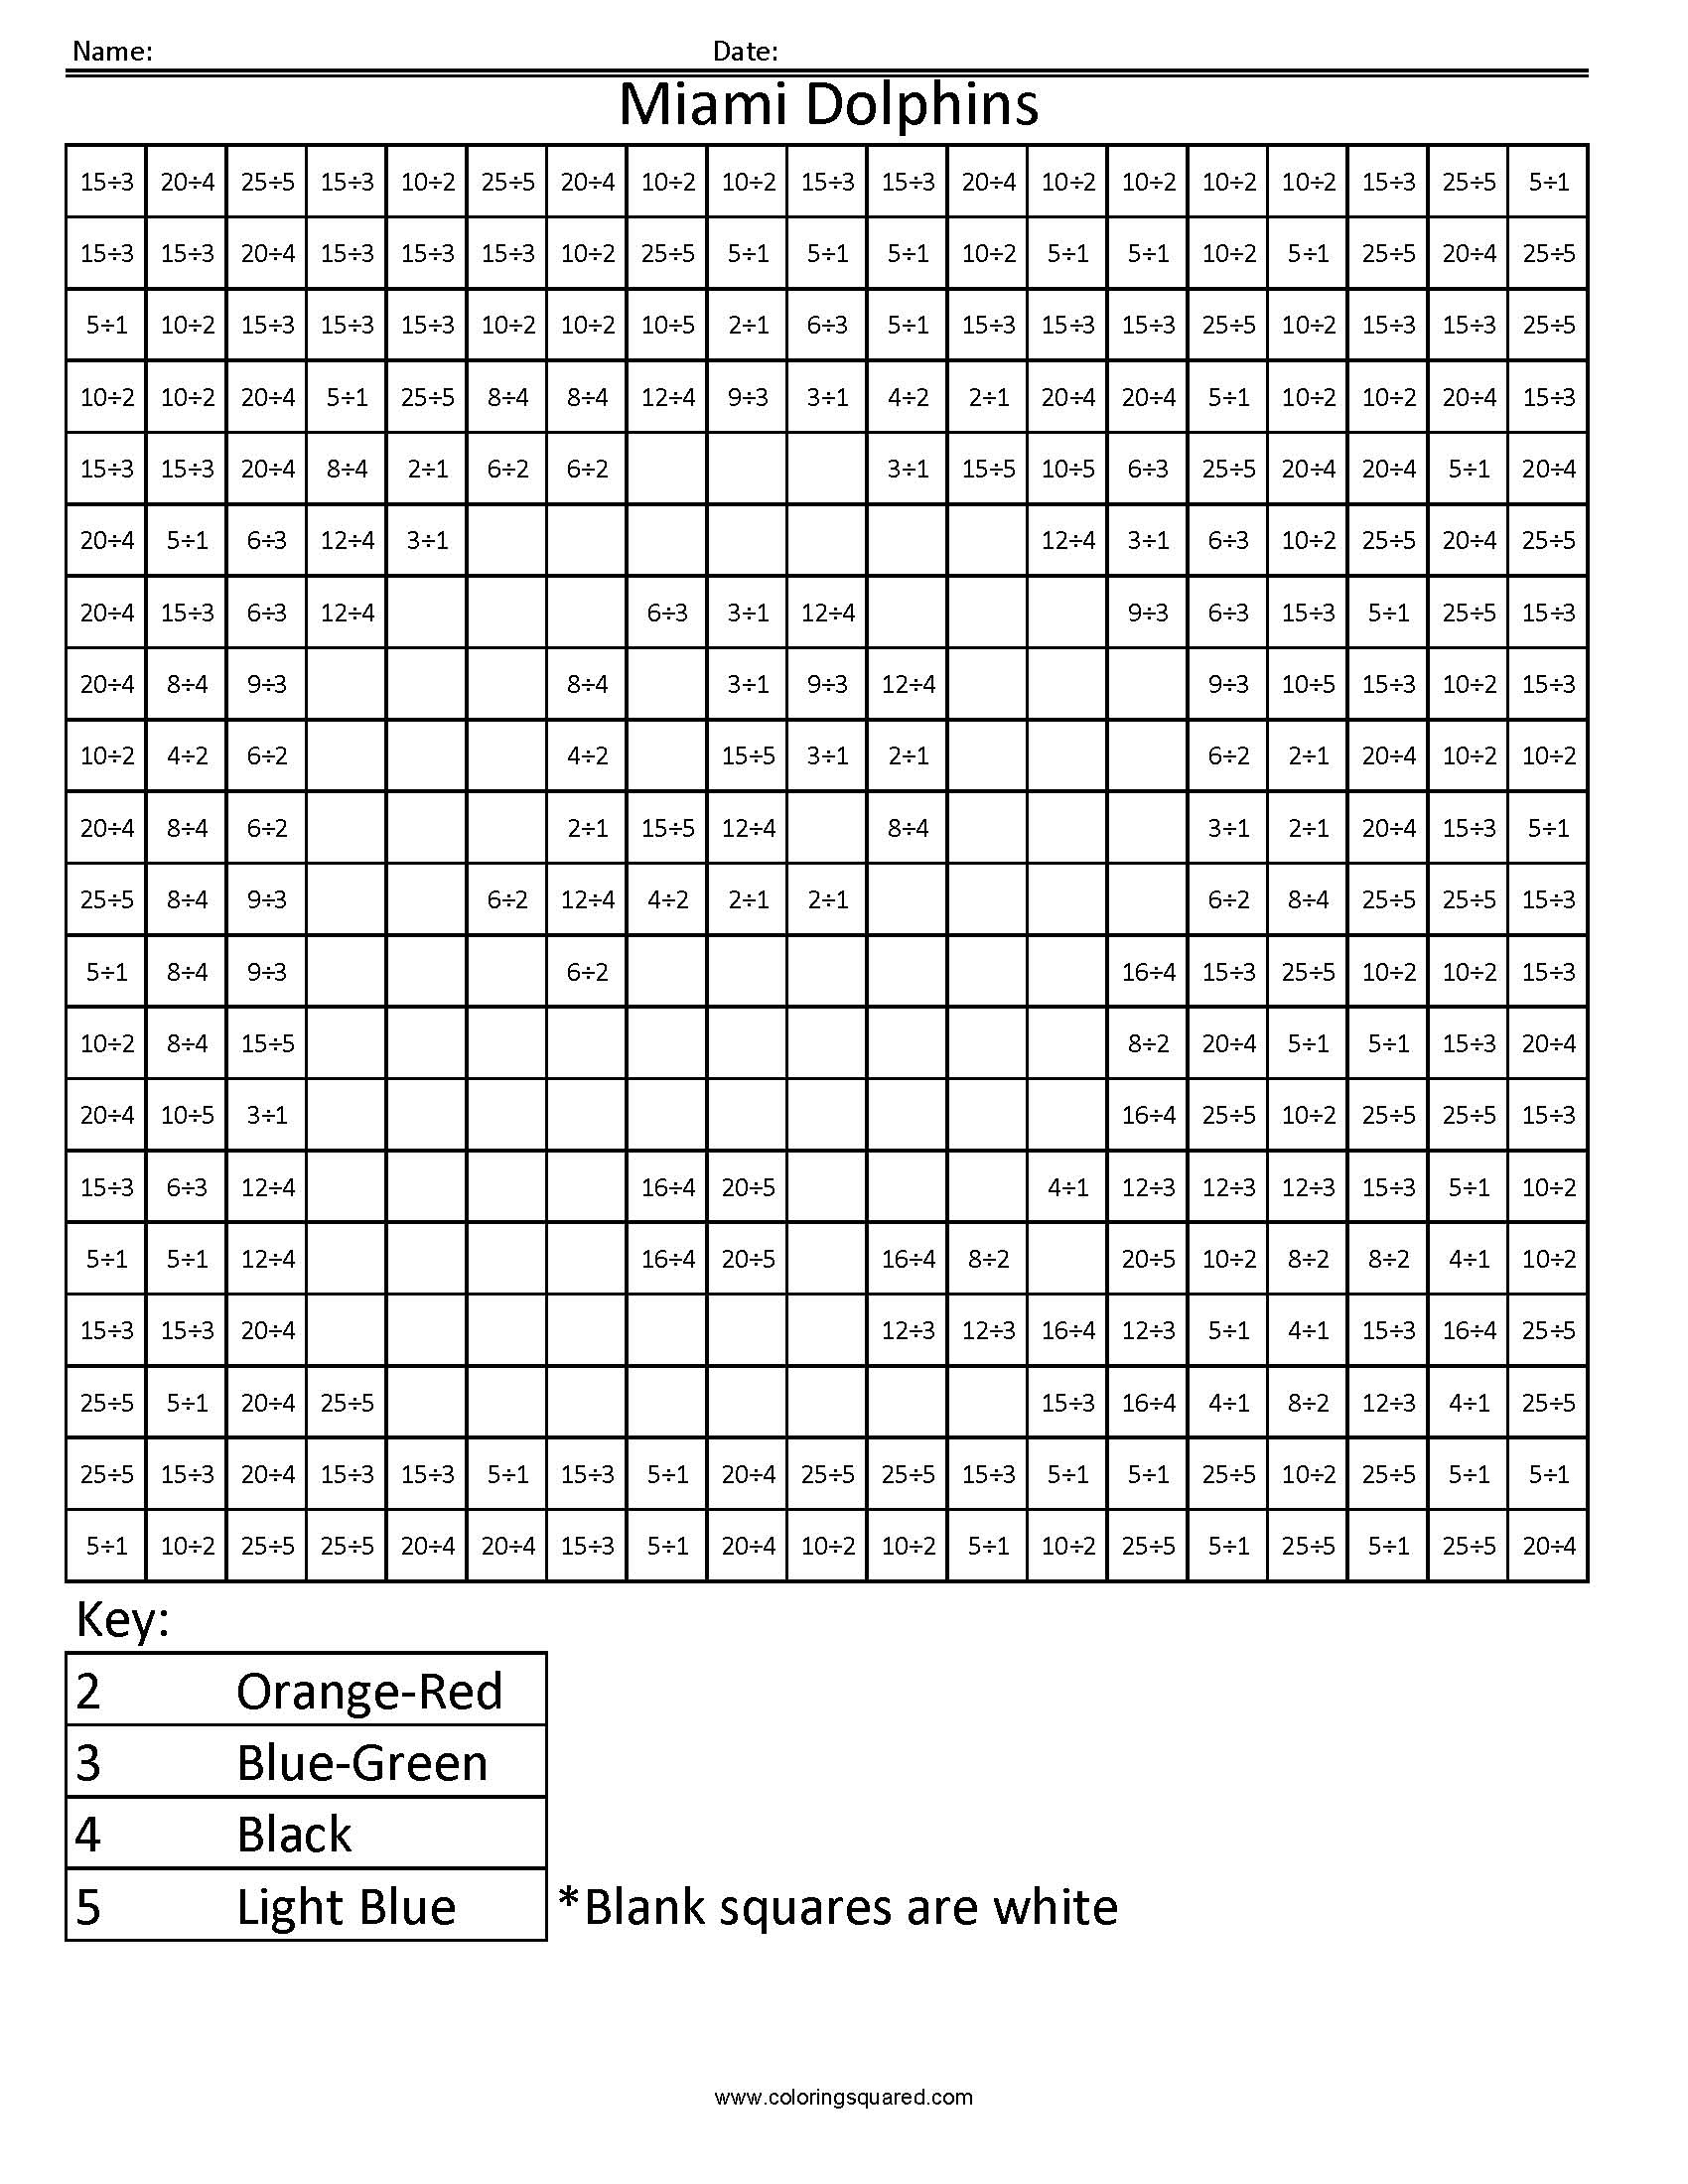 10md miami dolphins nfl afc football math coloring coloring squared